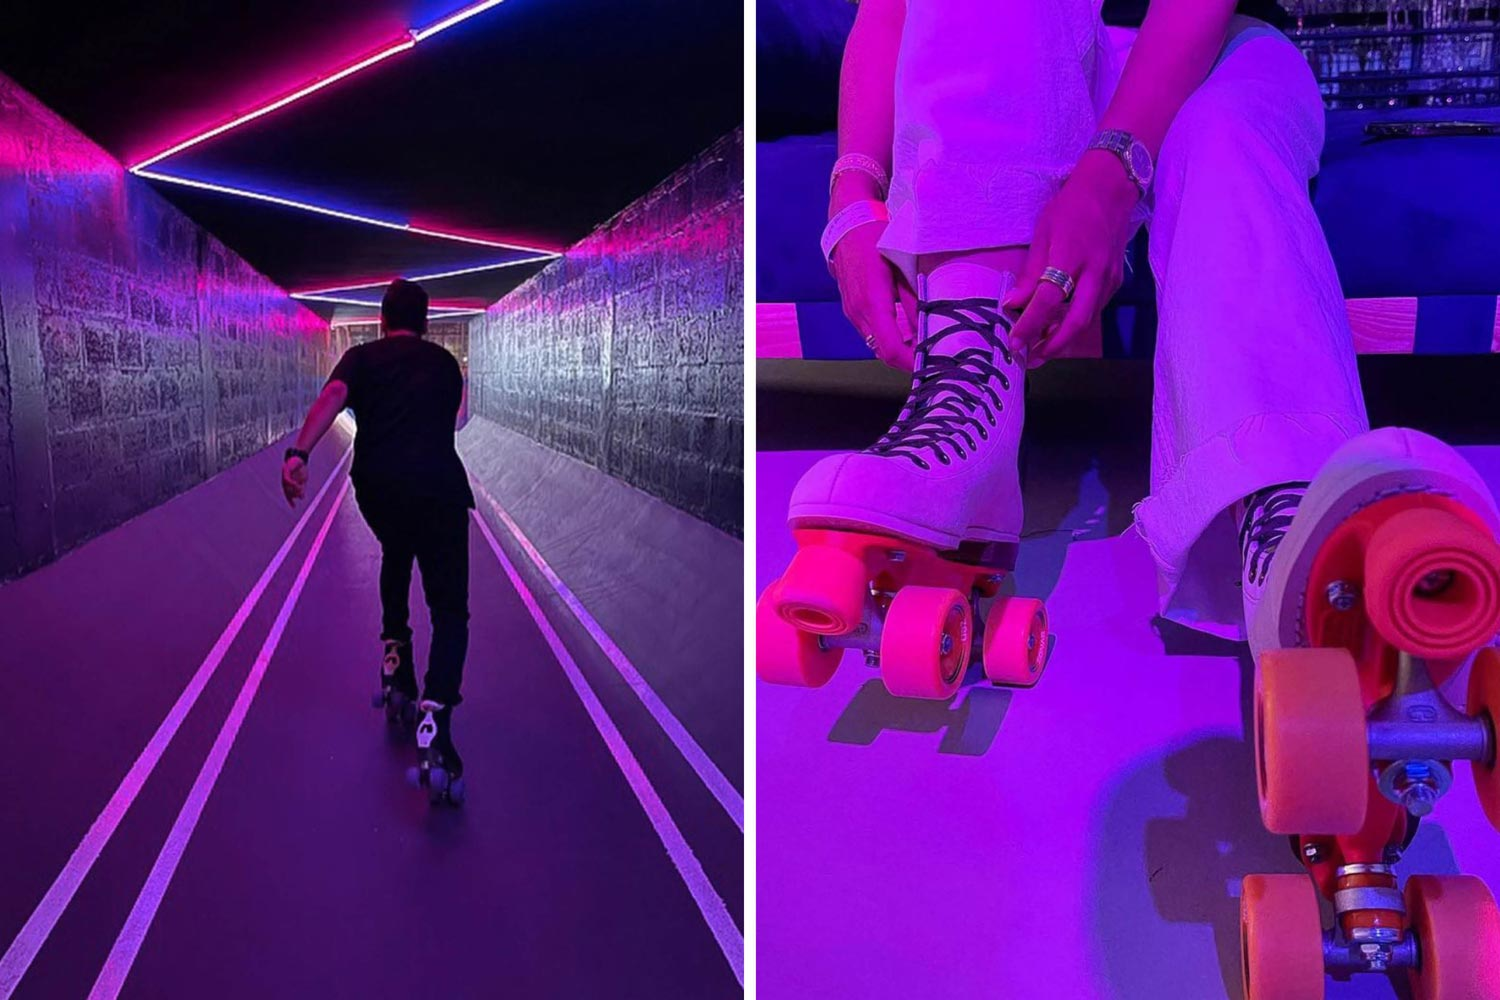 Rolldxb roller disco opens in Dubai | Sport, Music, Things To Do | Time Out  Dubai